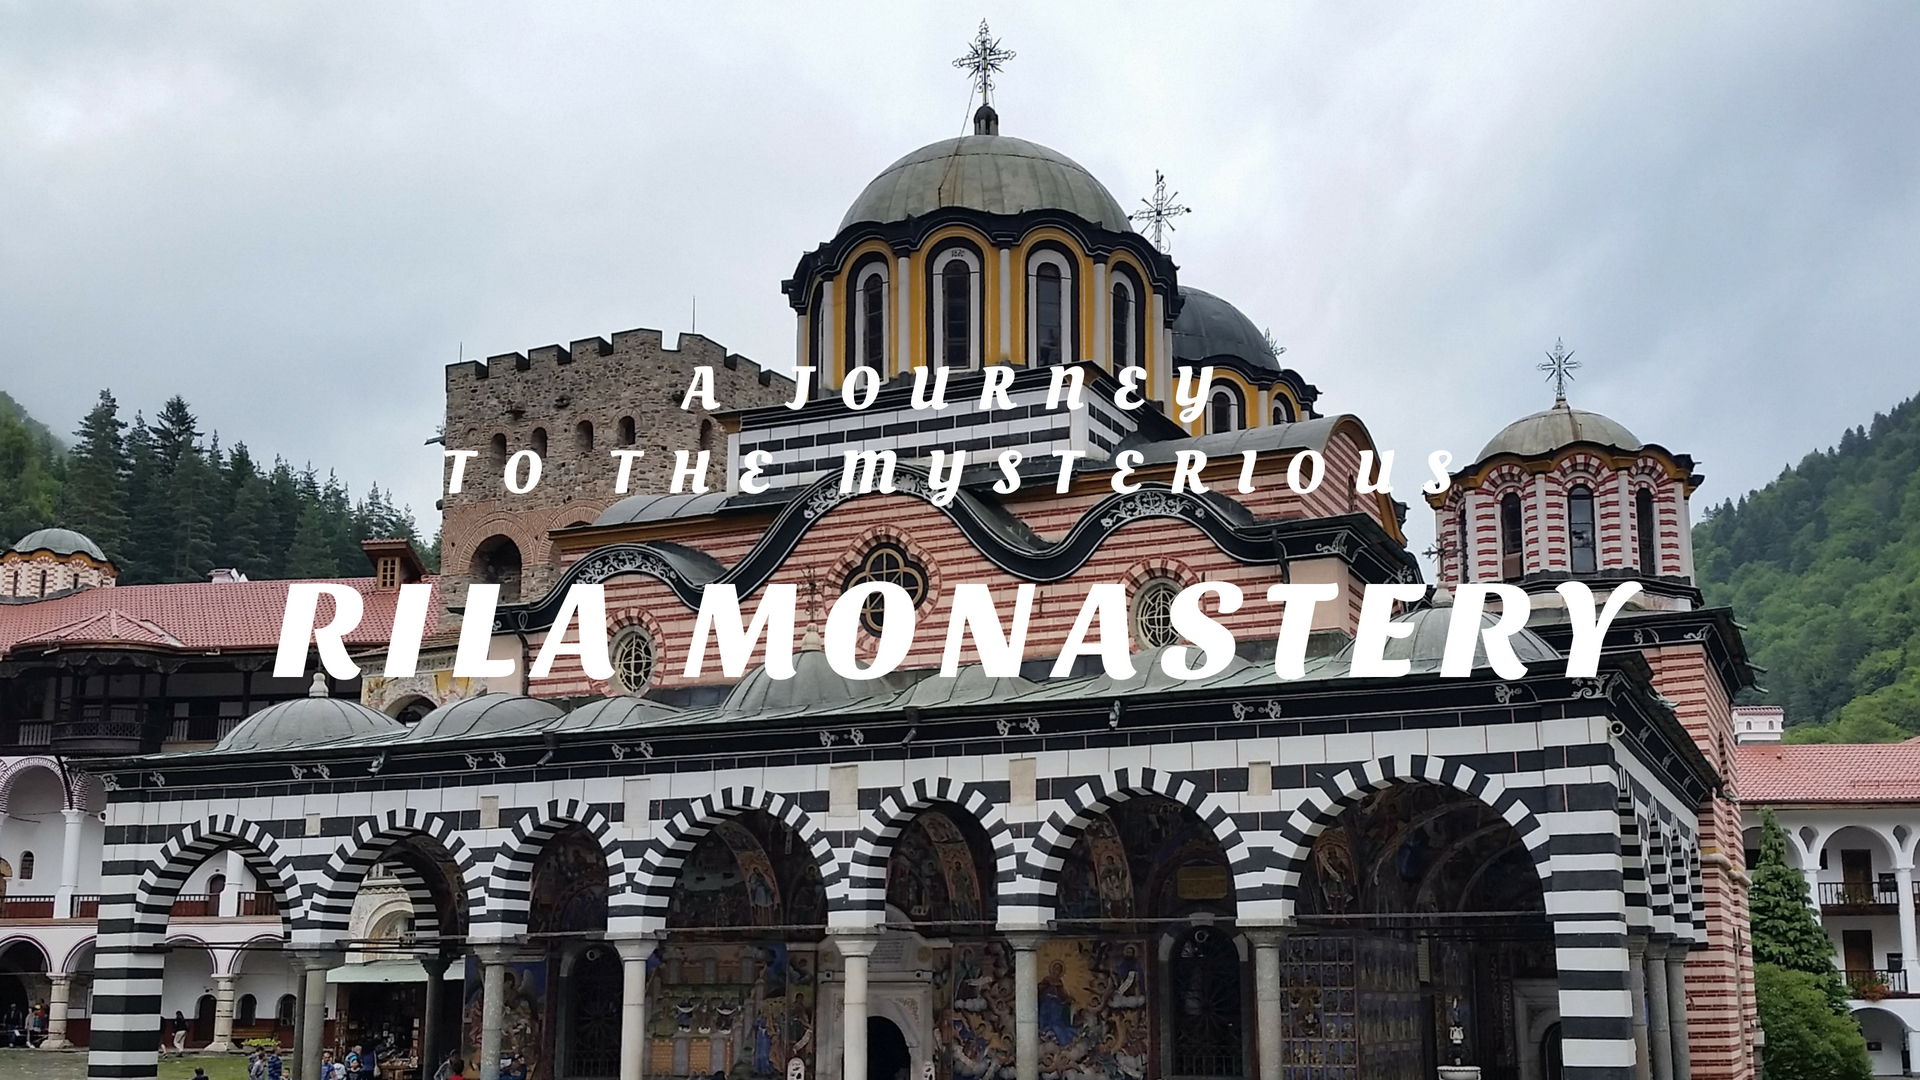 A JOURNEY TO THE MYSTERIOUS RILA MONASTERY